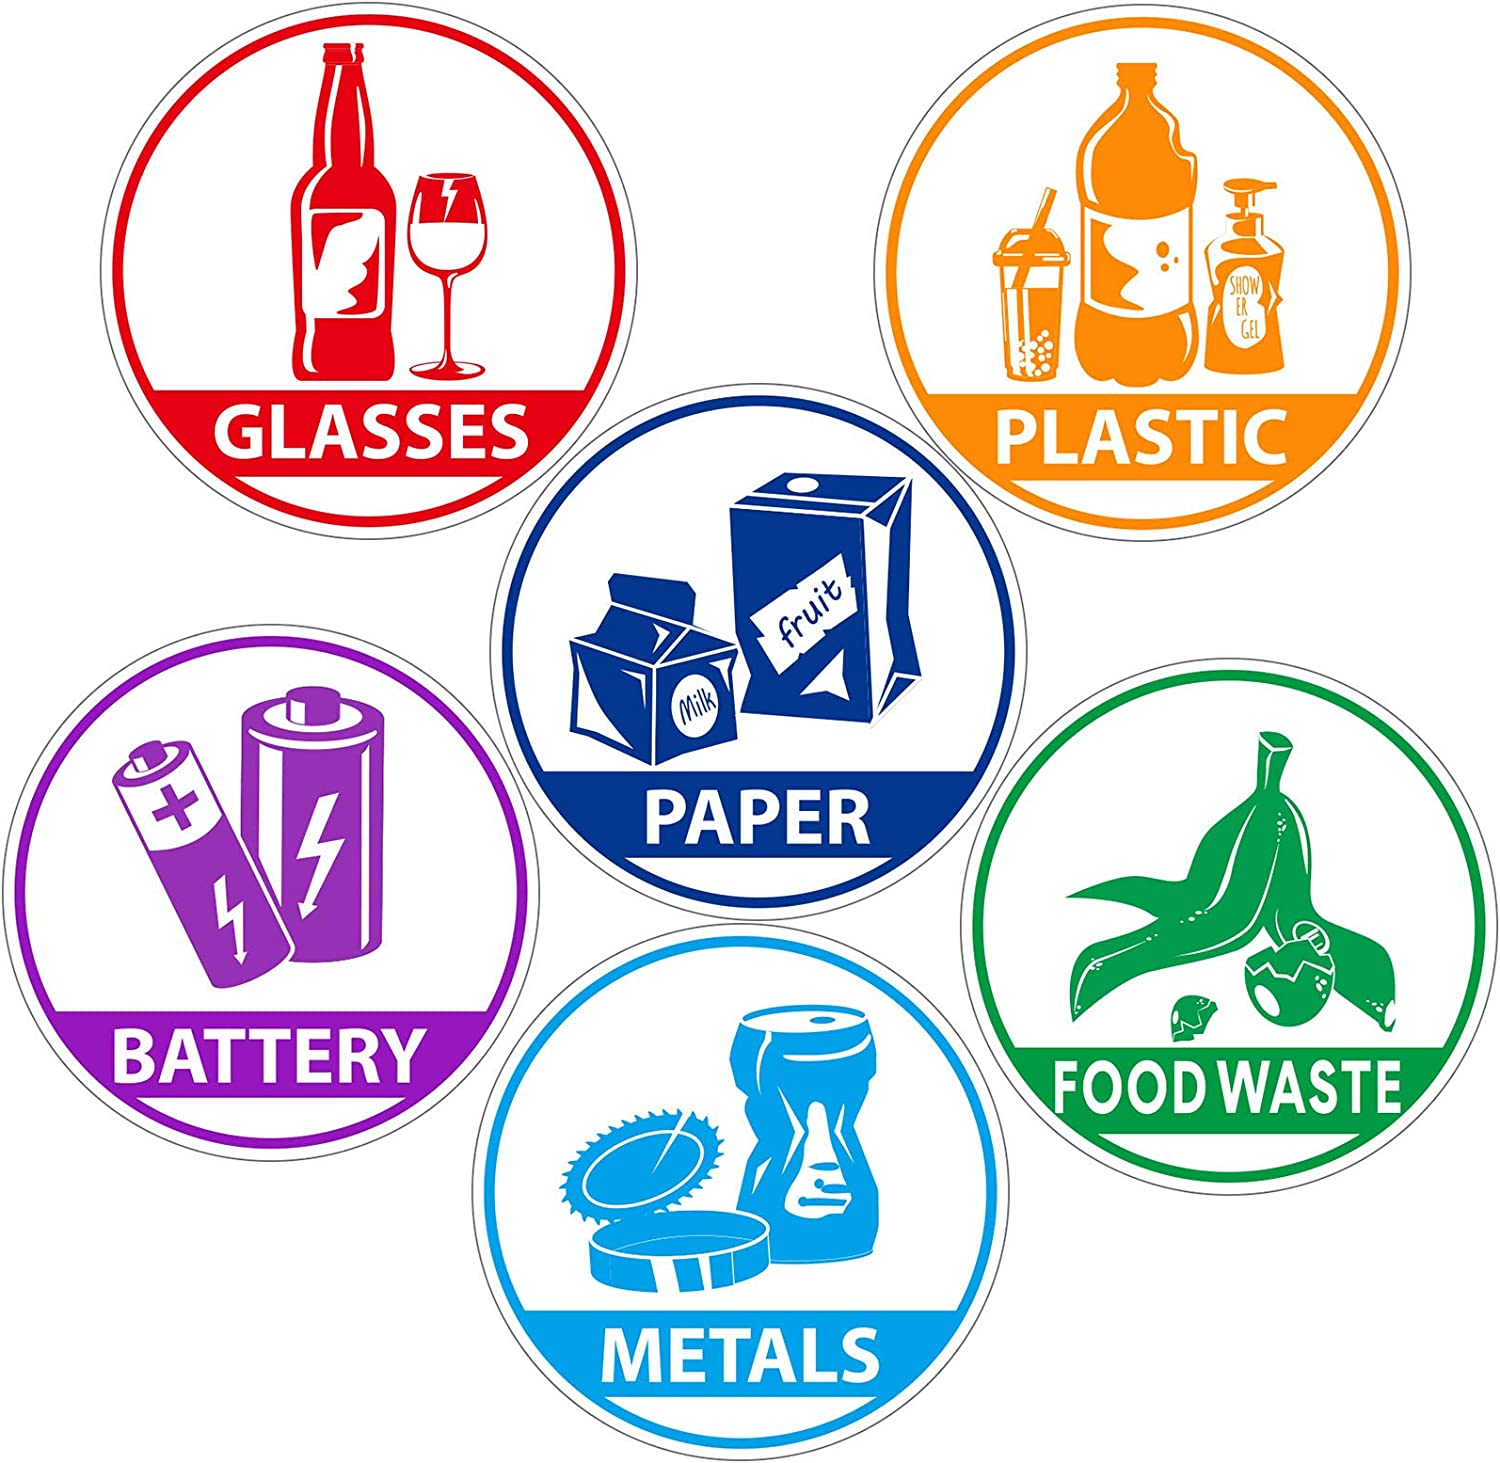 6 Pieces Recycle Sticker Decal for Trash Can, Re-Adjustable Waterproof Bin LabelsPaper Metal Plastic Glass Waste SortingRecycling Sticker Sign for Use in Home and Office